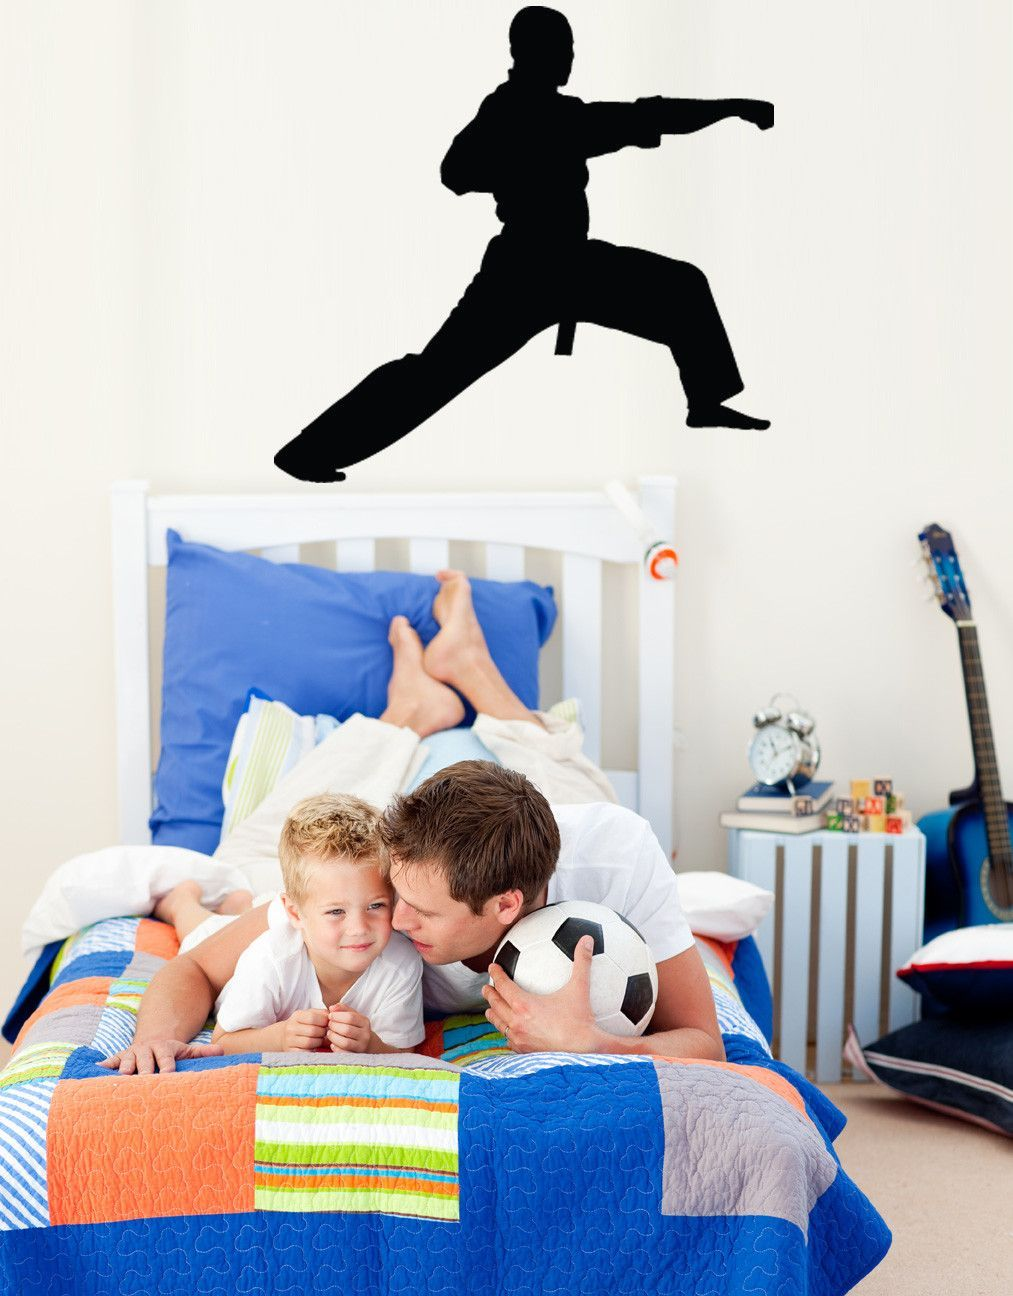 Martial Arts Lunge Silhouette Cutout Wall Decal